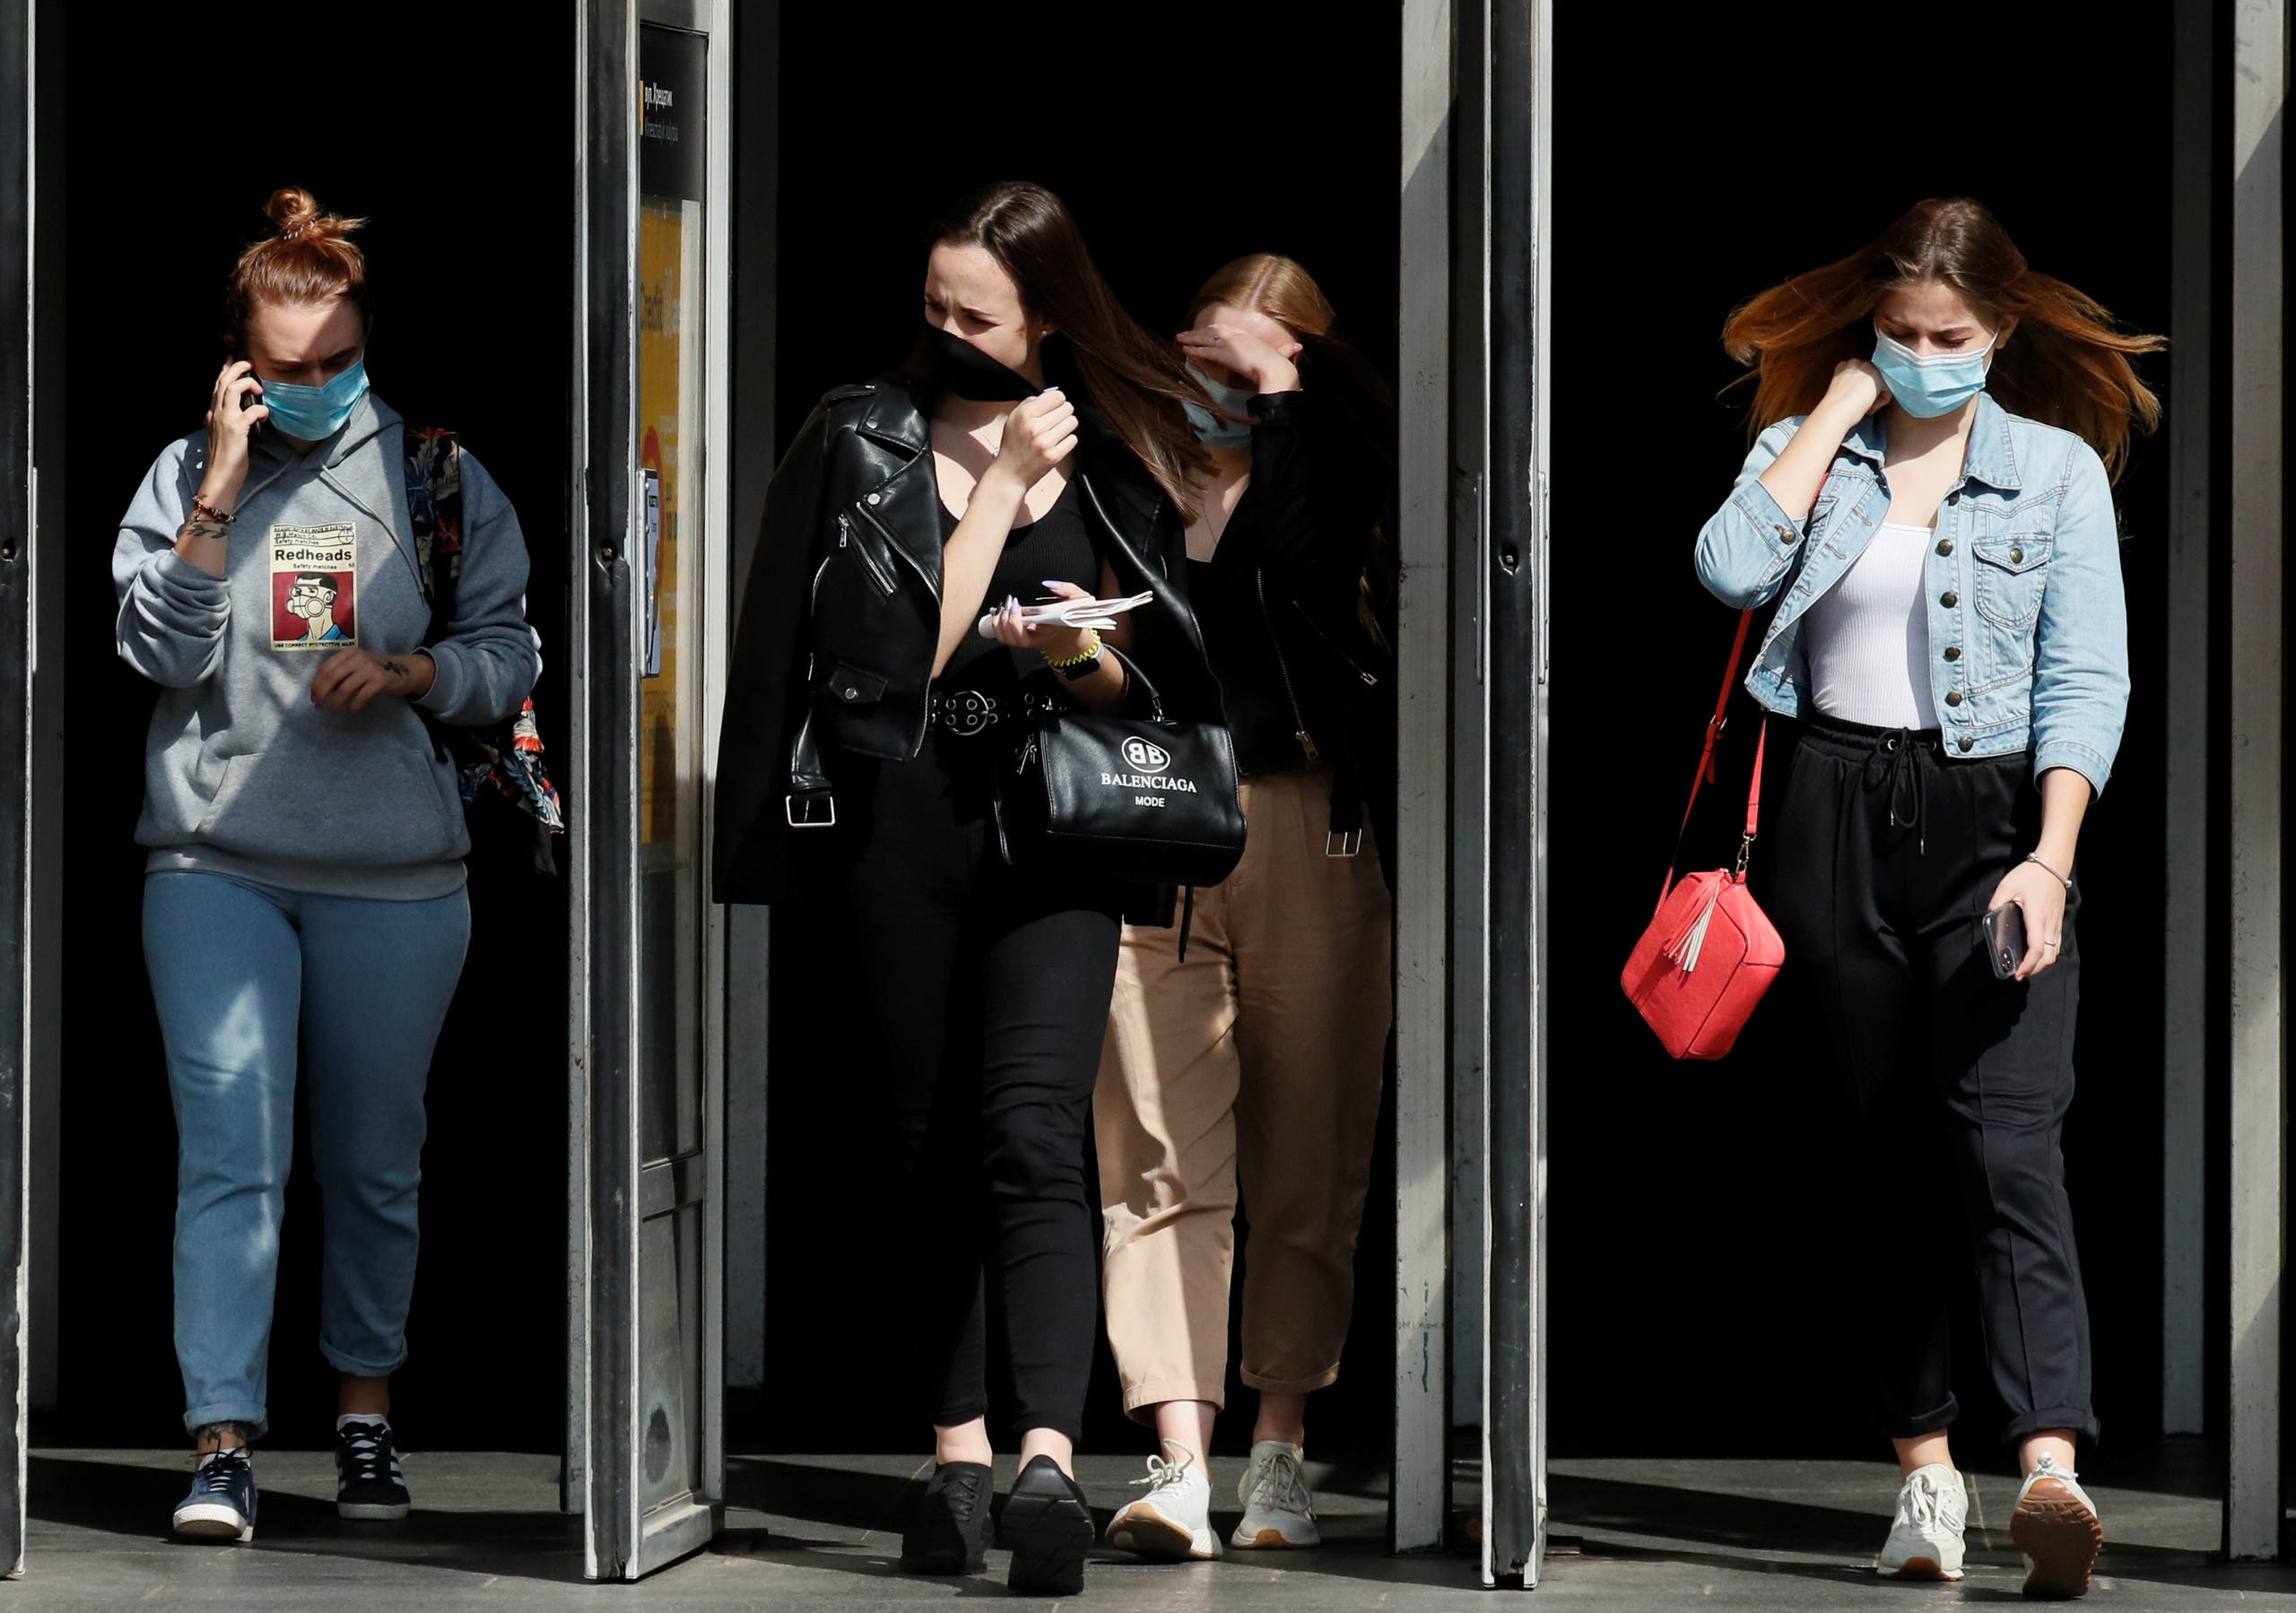 People wearing protective face masks amid the outbreak of the coronavirus disease (COVID-19) walk out of a metro station in Kyiv, Ukraine July 15, 2020. (File photo: Reuters)